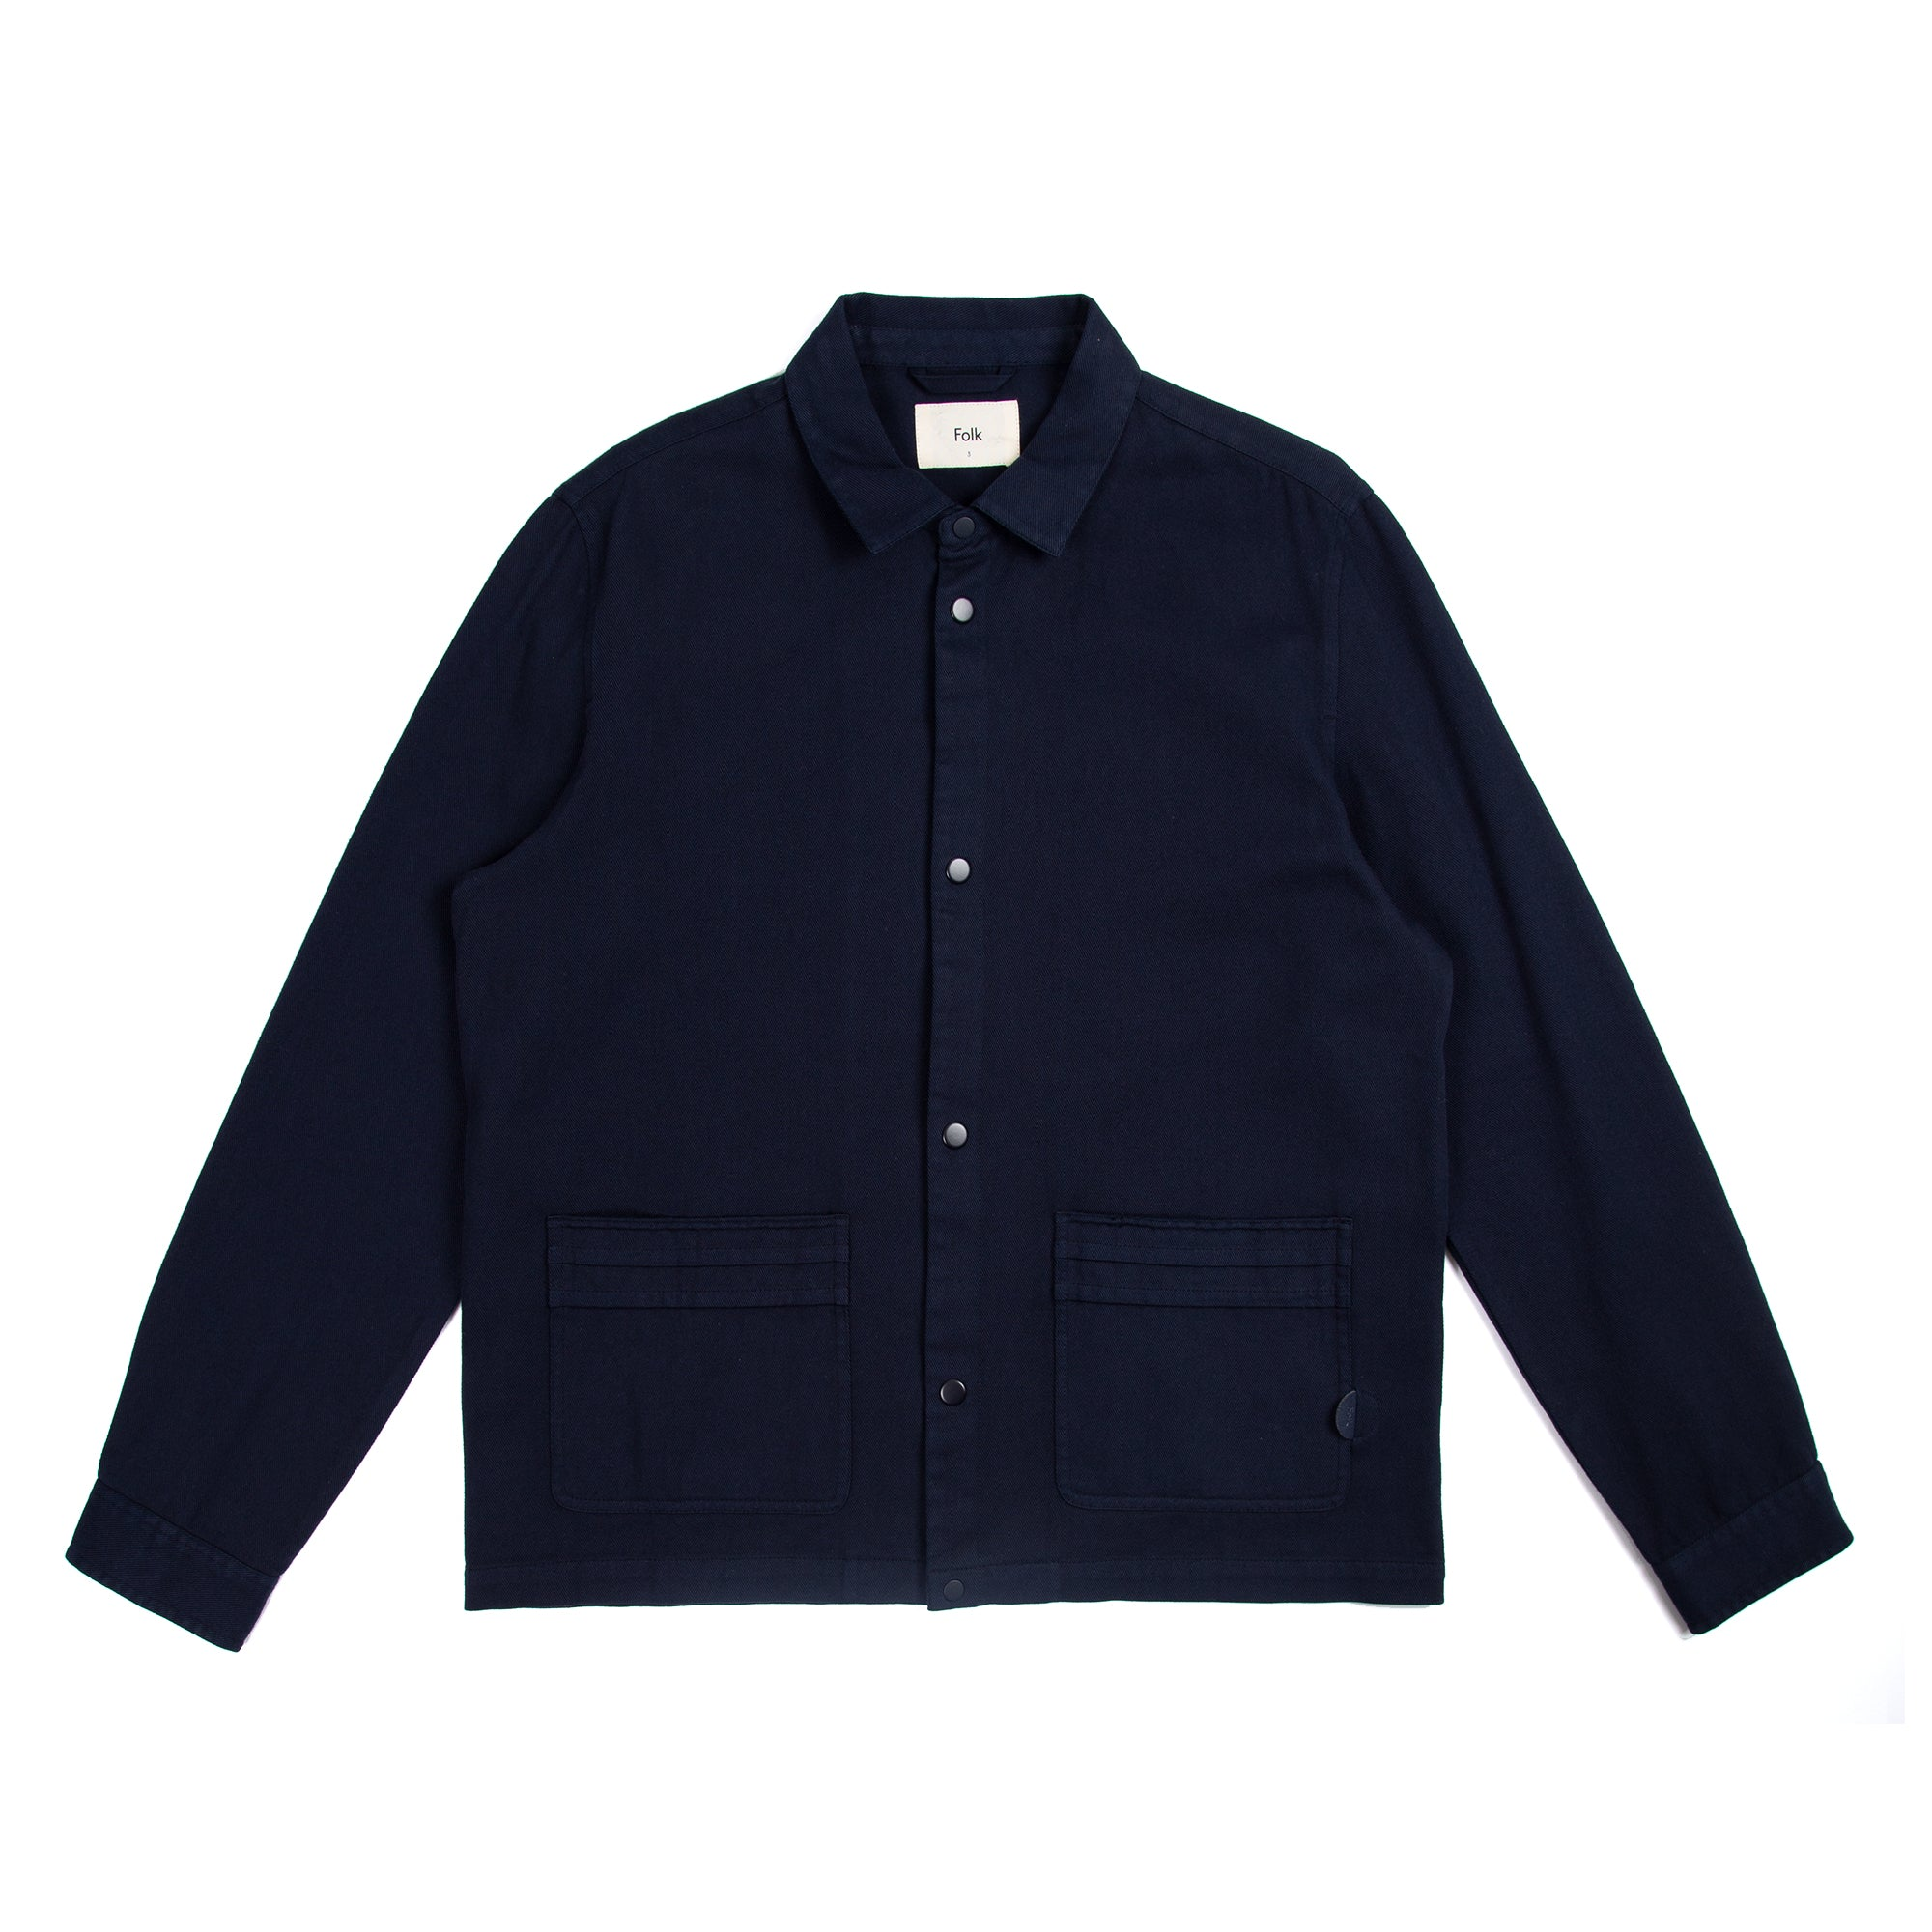 Horizon Jacket - Navy